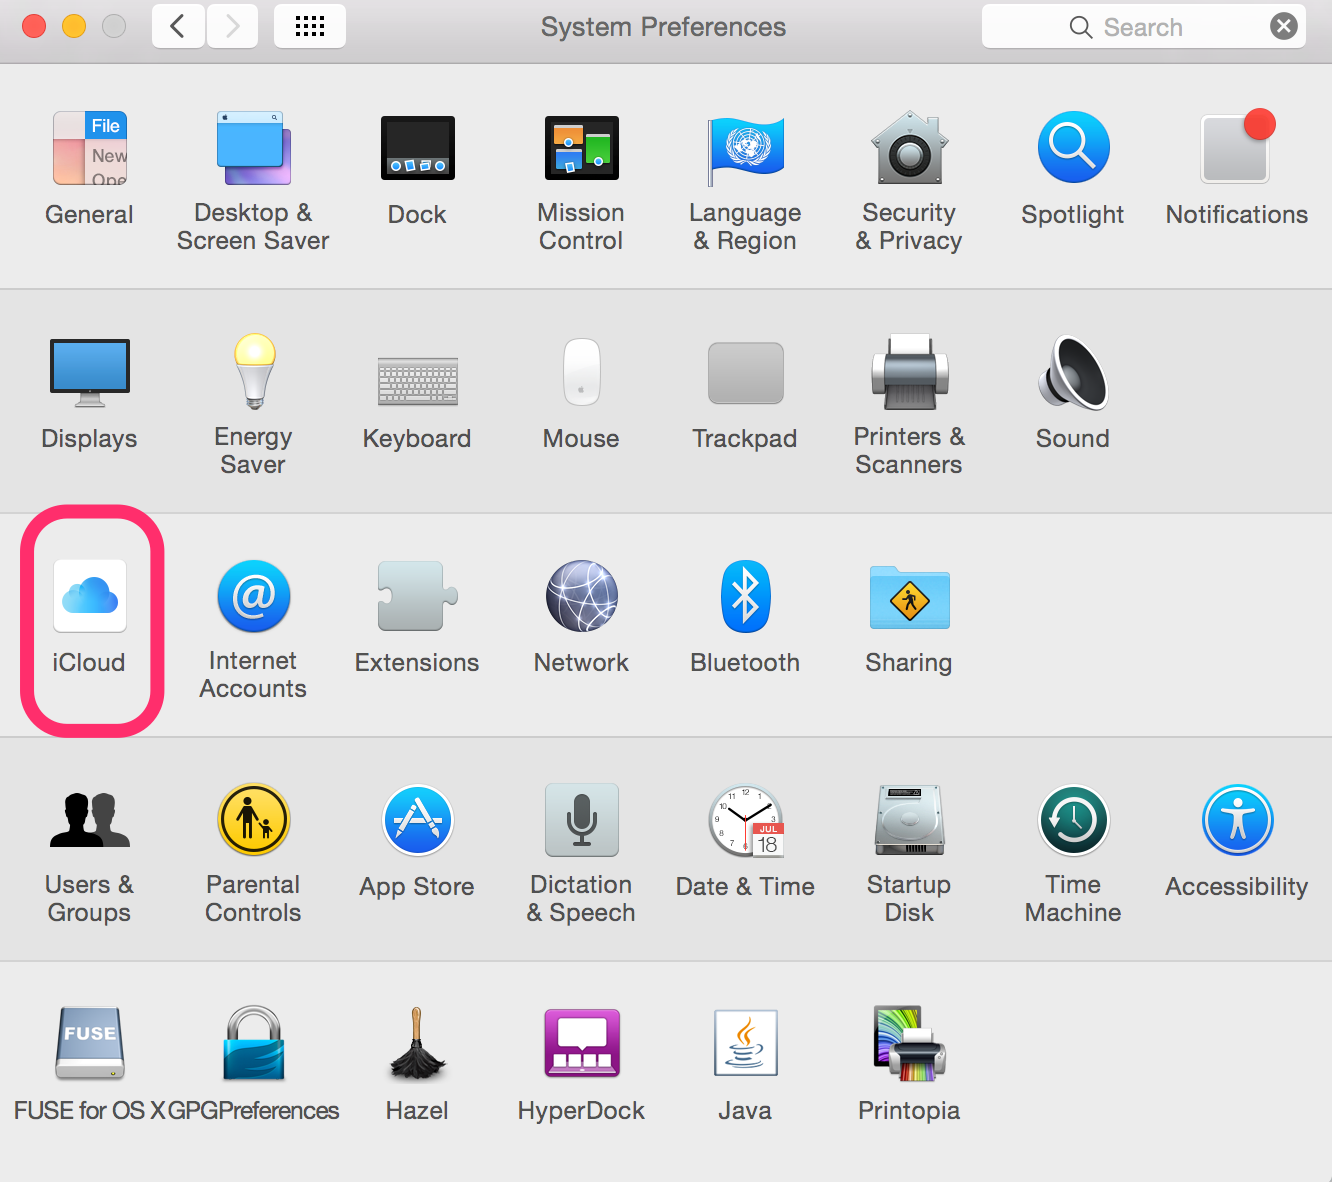 iCloud Settings in the System Preferences